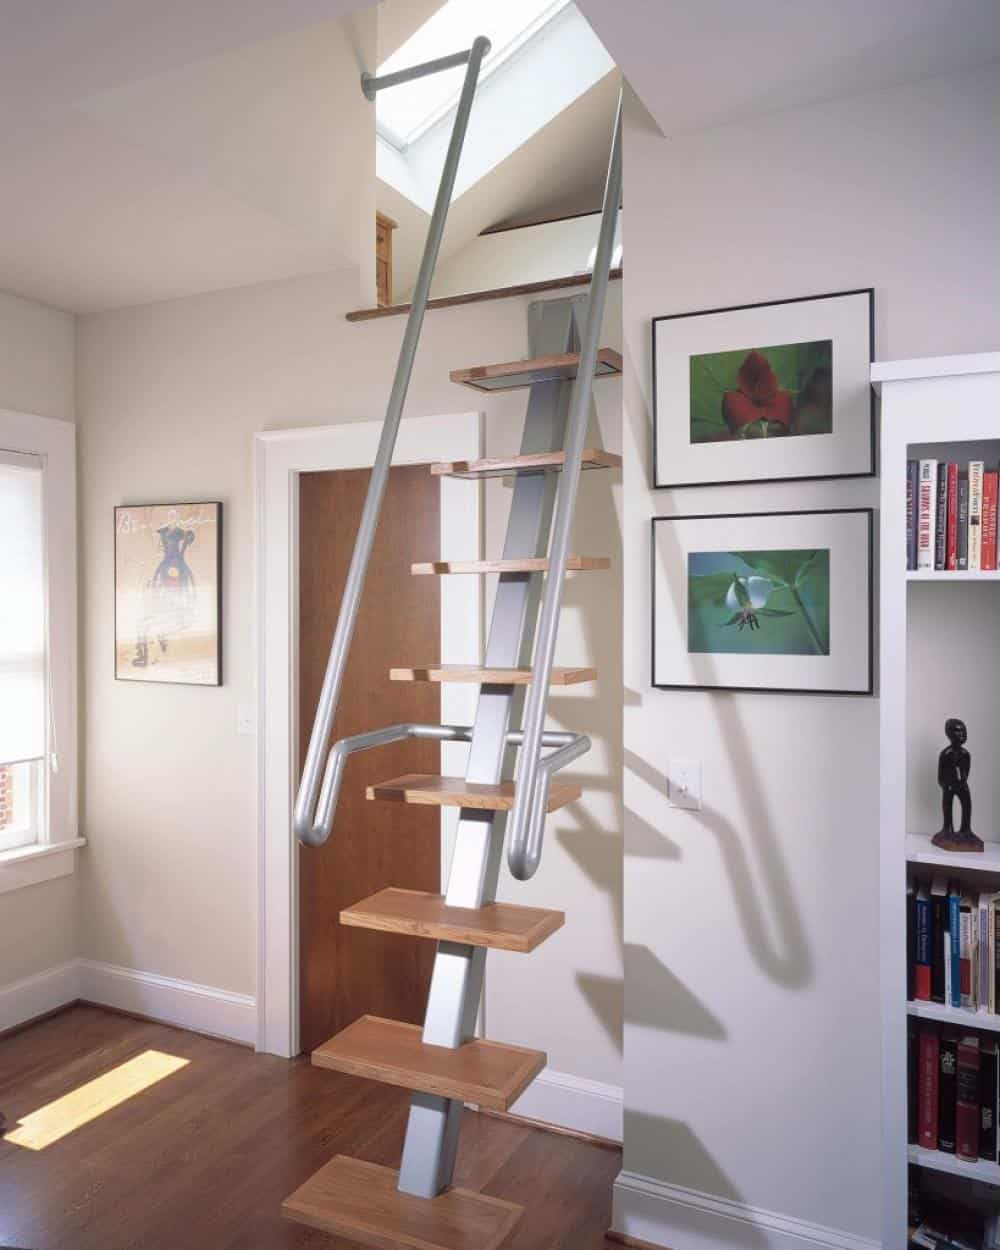 Home Design Ideas Videos: Unique And Creative Staircase Designs For Modern Homes